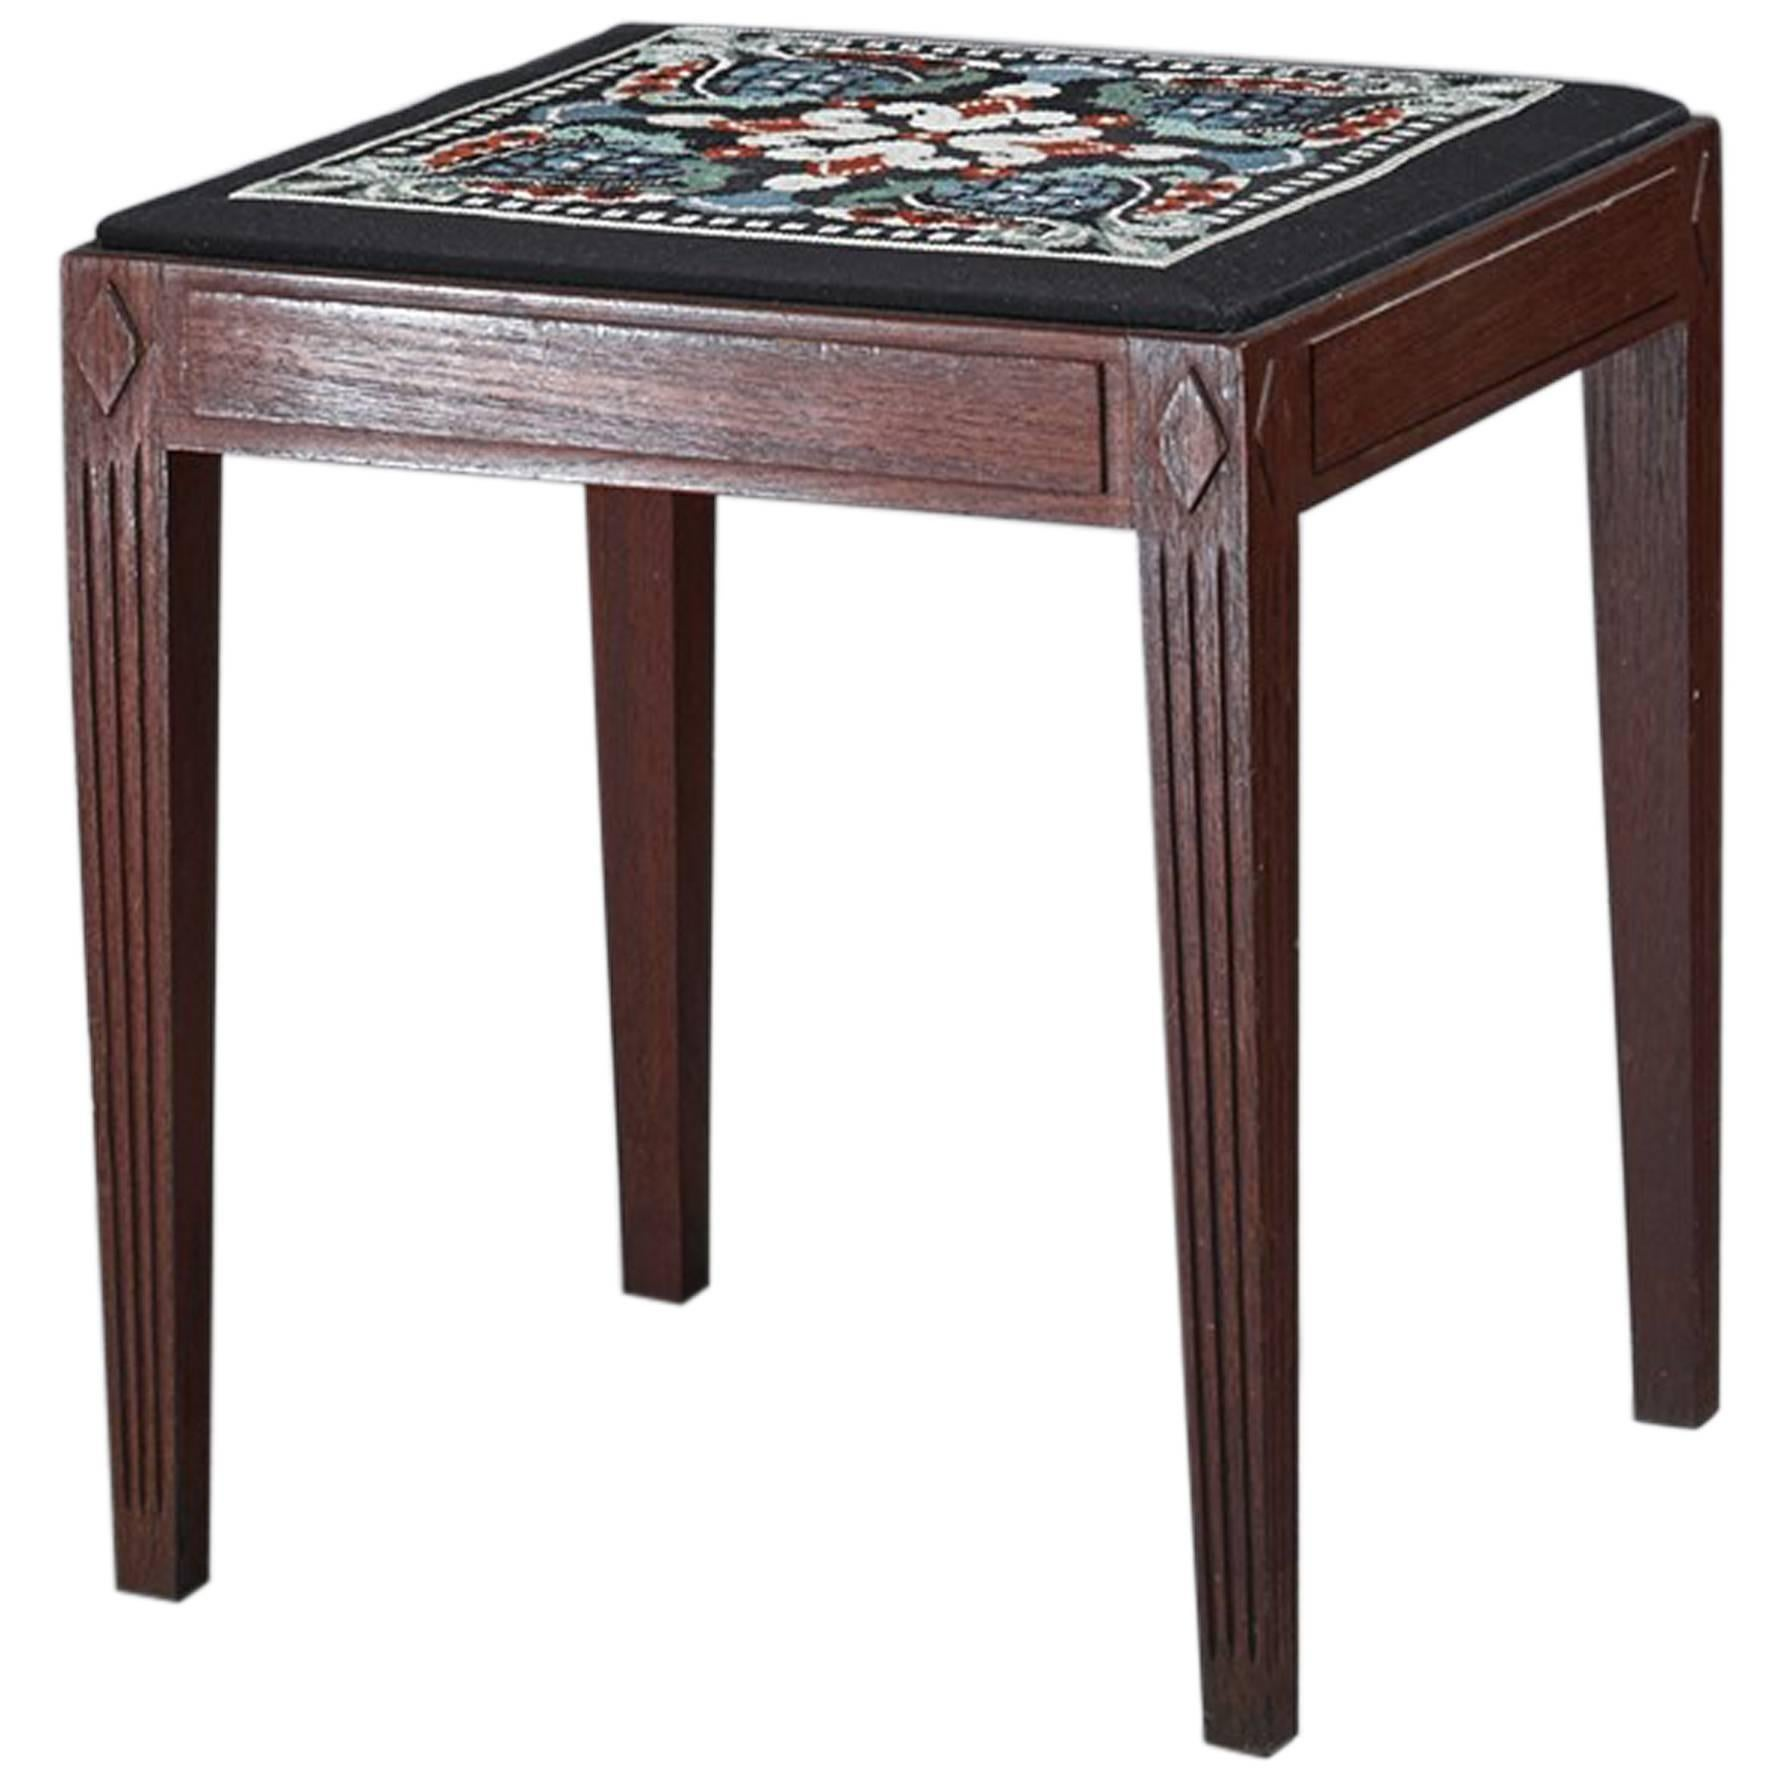 Danish Teak Stool with Embroidered Seating, 1940s